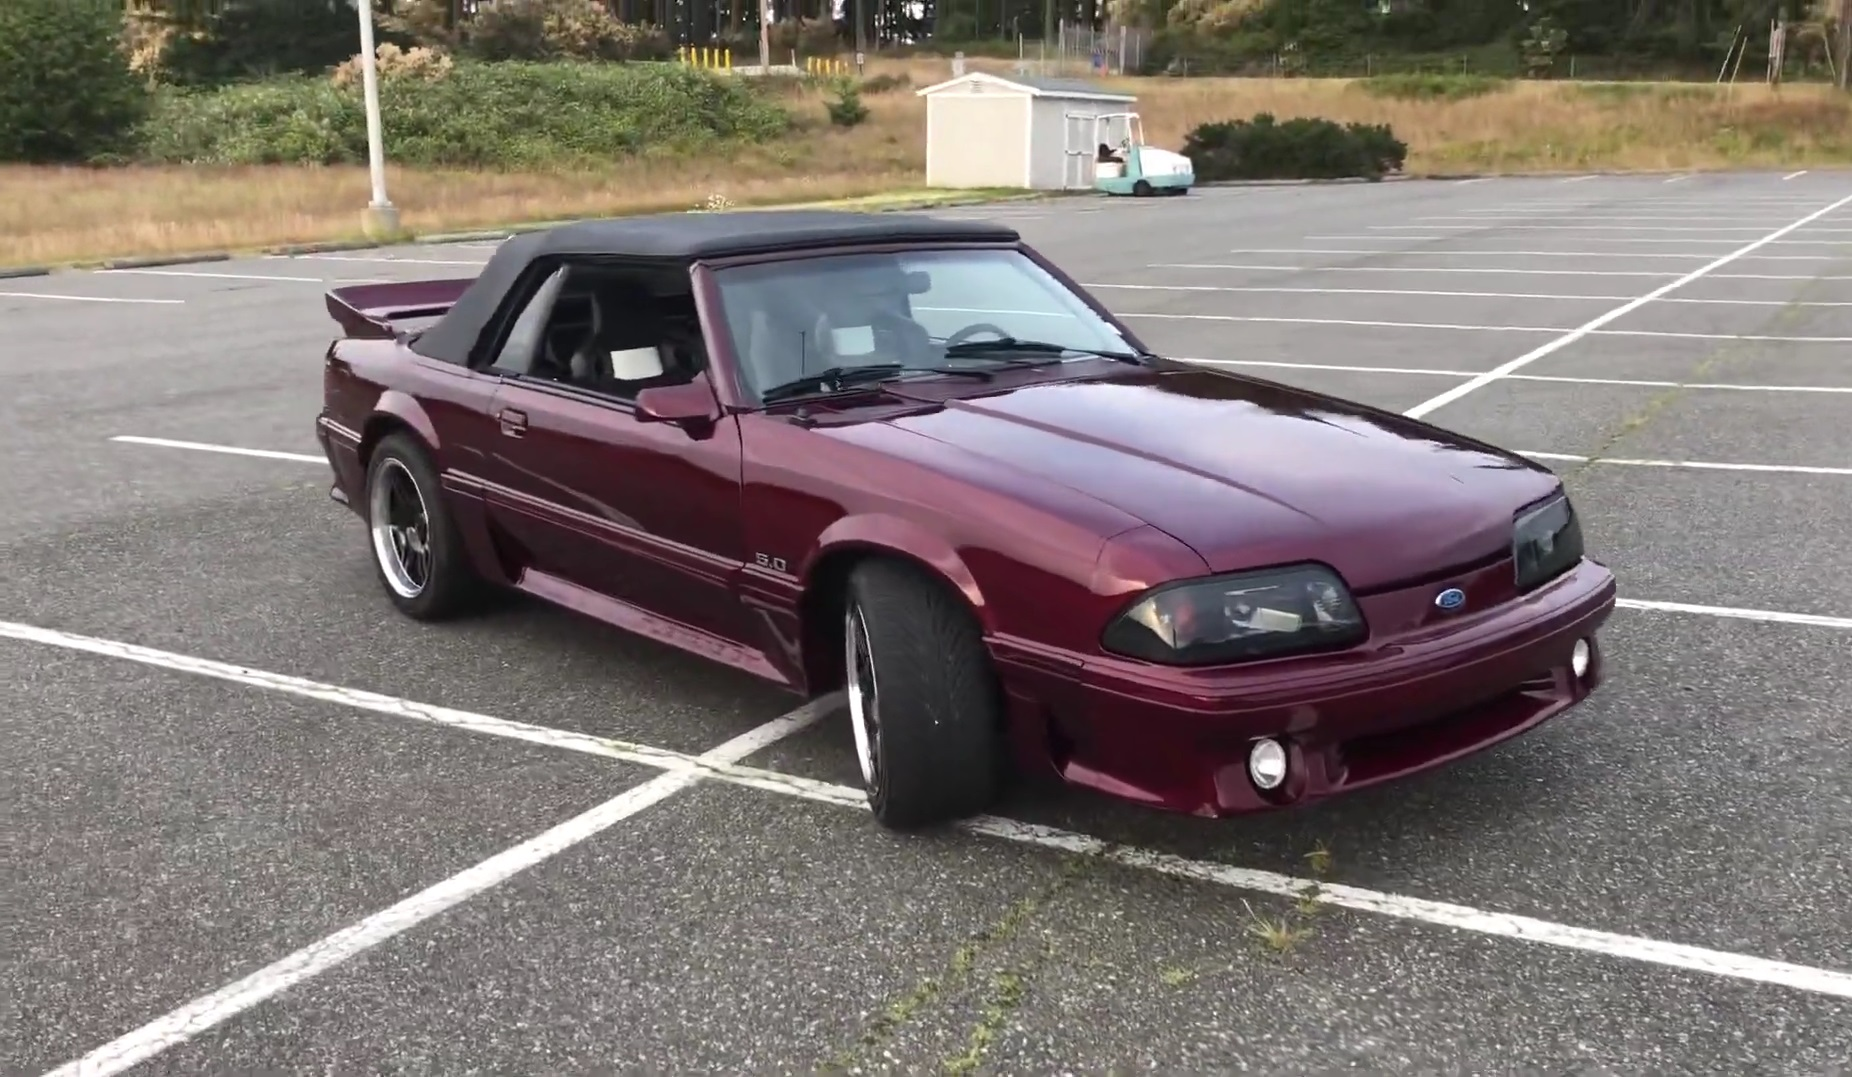 Video: 1987 Ford Mustang GT Convertible 5.0 In-Depth Look